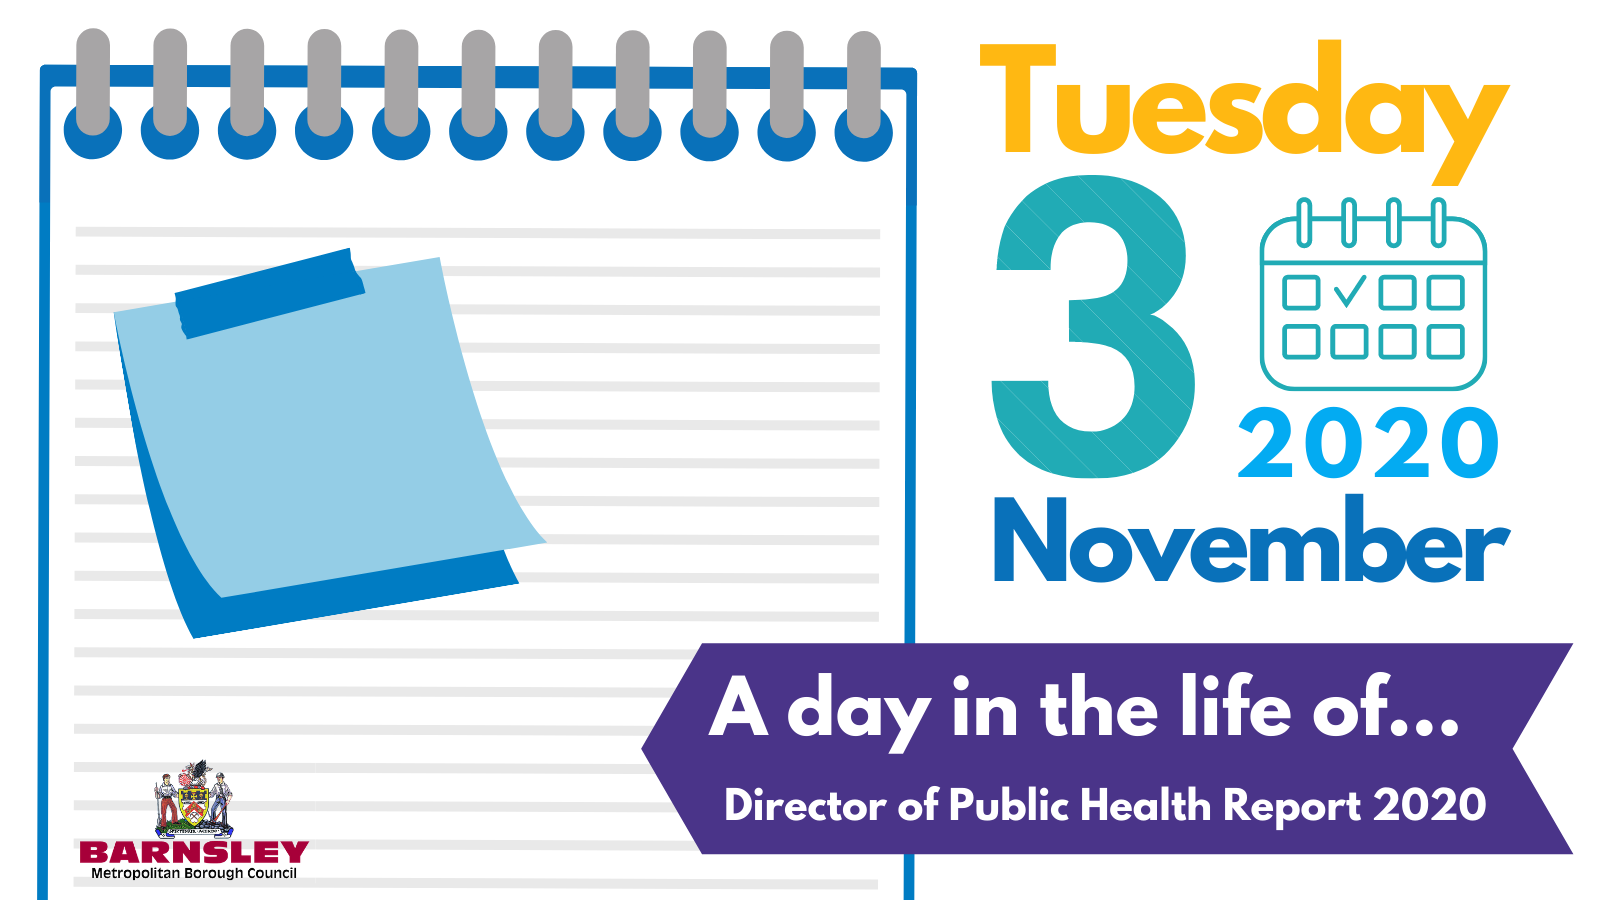 Drawing of a note pad with the cation: Tuesday 3 November 2020, a day in the life of... Director of Public Health Report 2020